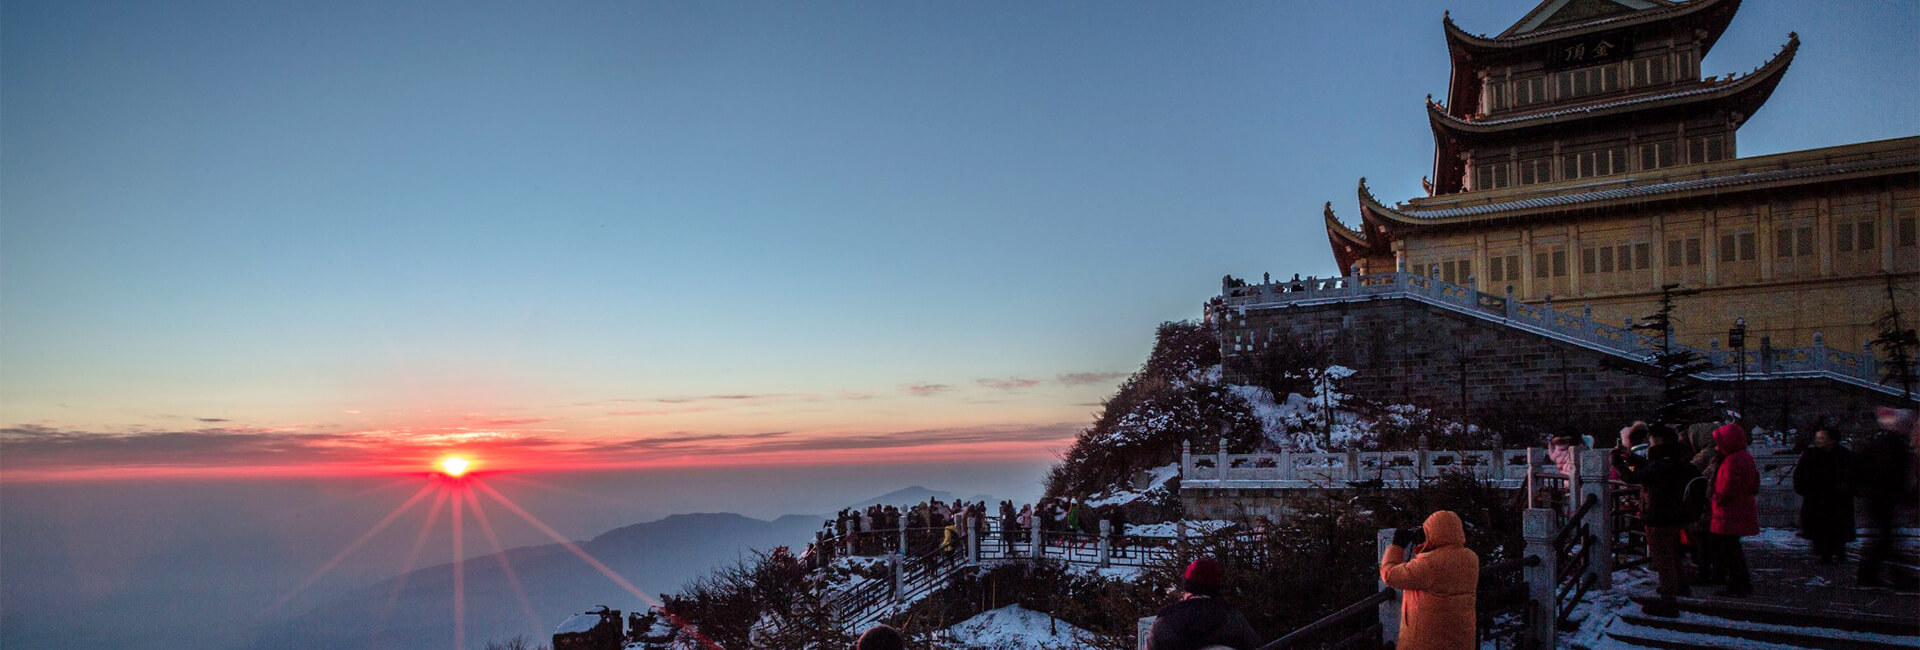 2 Days Mount Emei Highlights Tour with Sunrise and Sunset